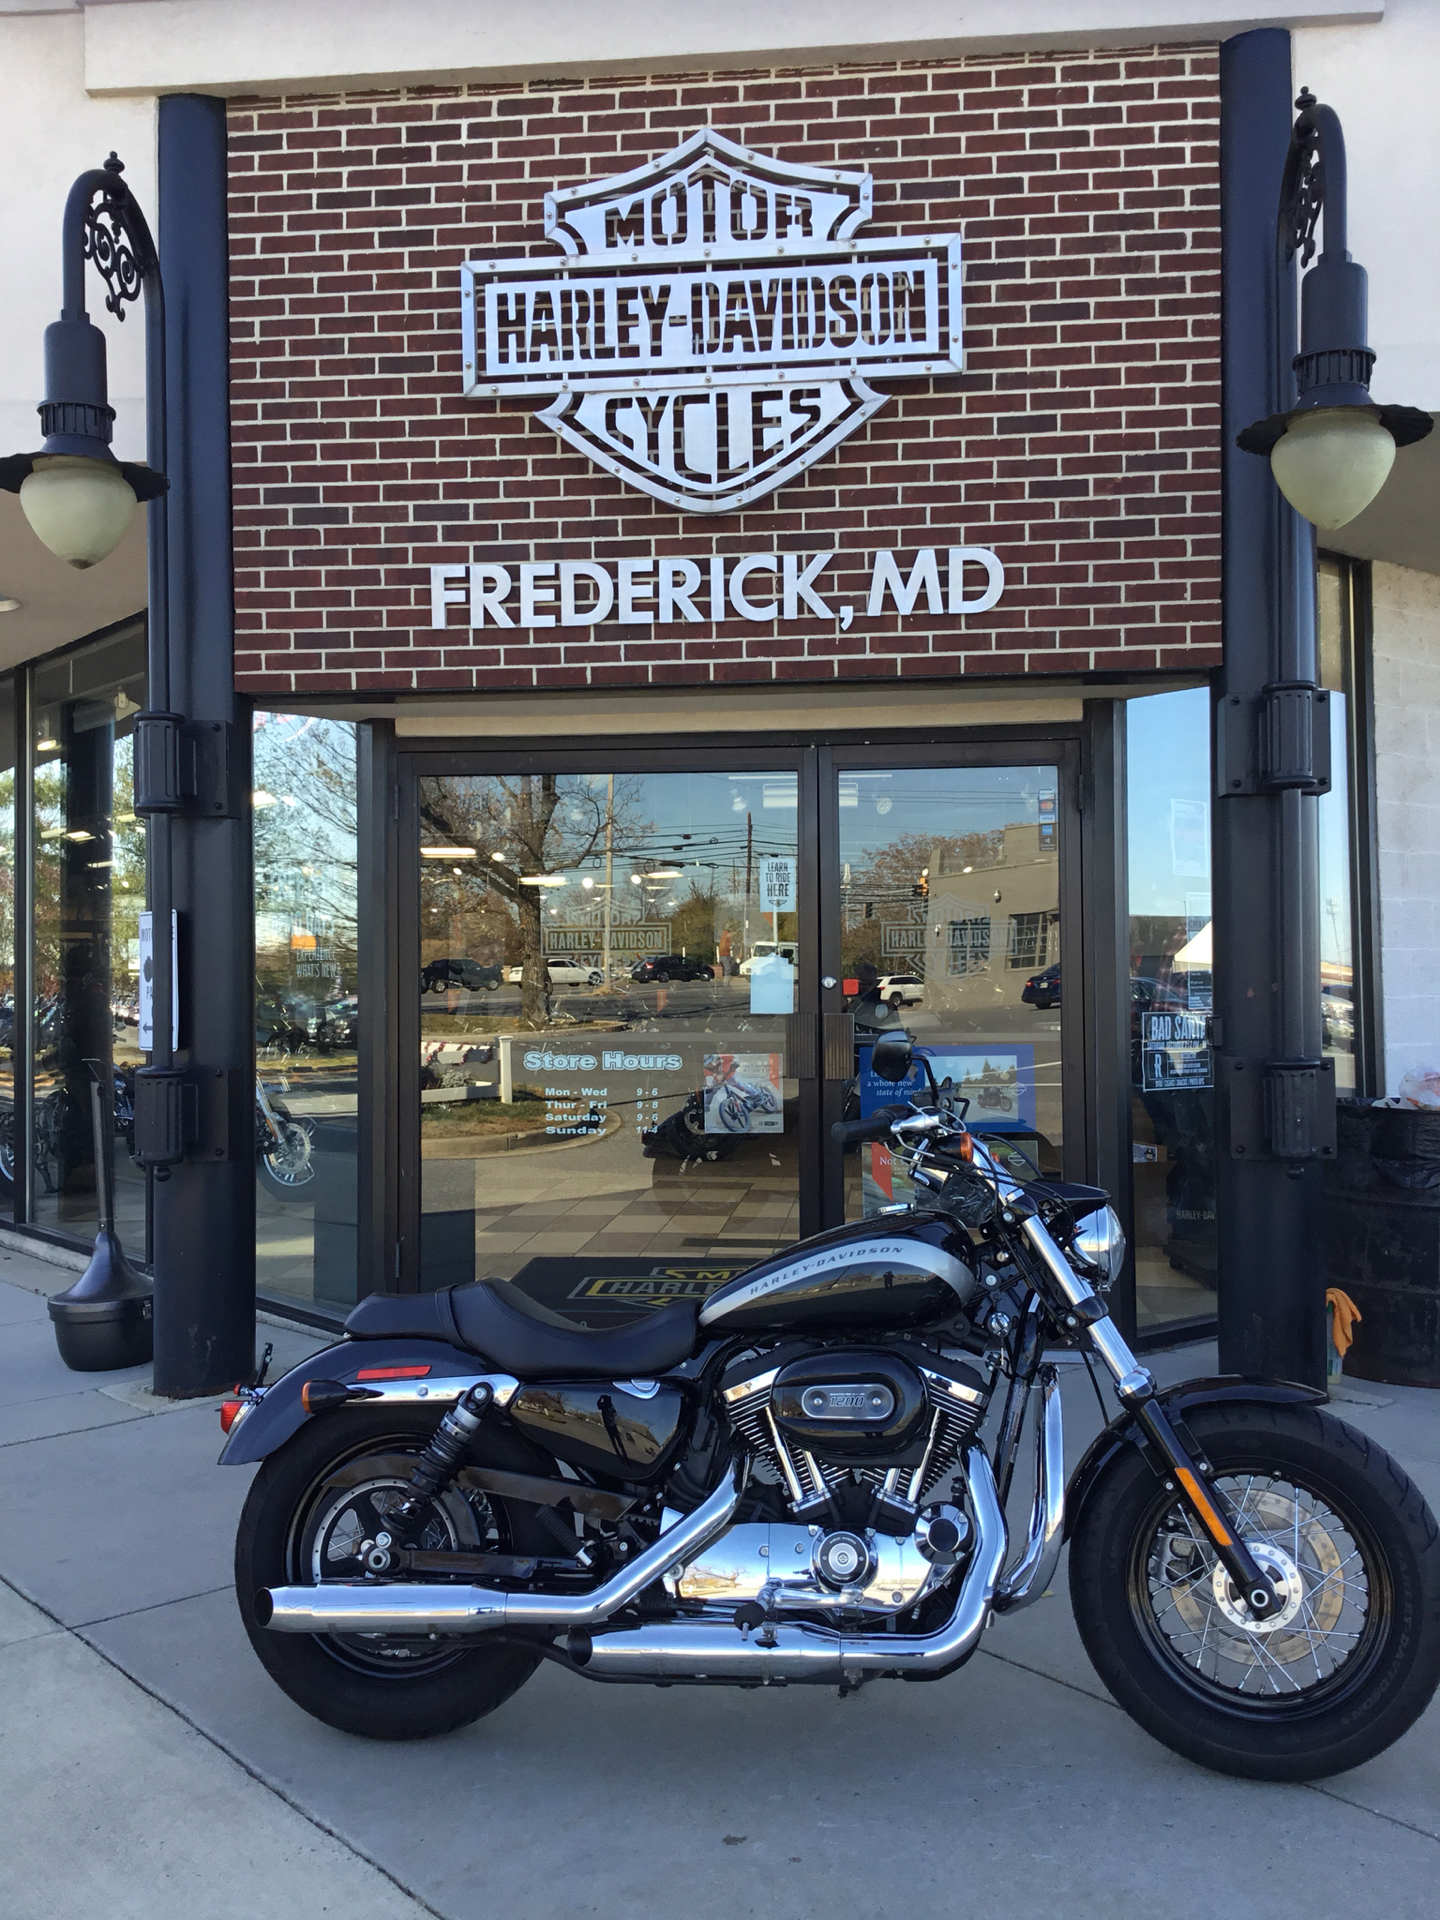 2018 Harley-Davidson XL1200C in Frederick, Maryland - Photo 1